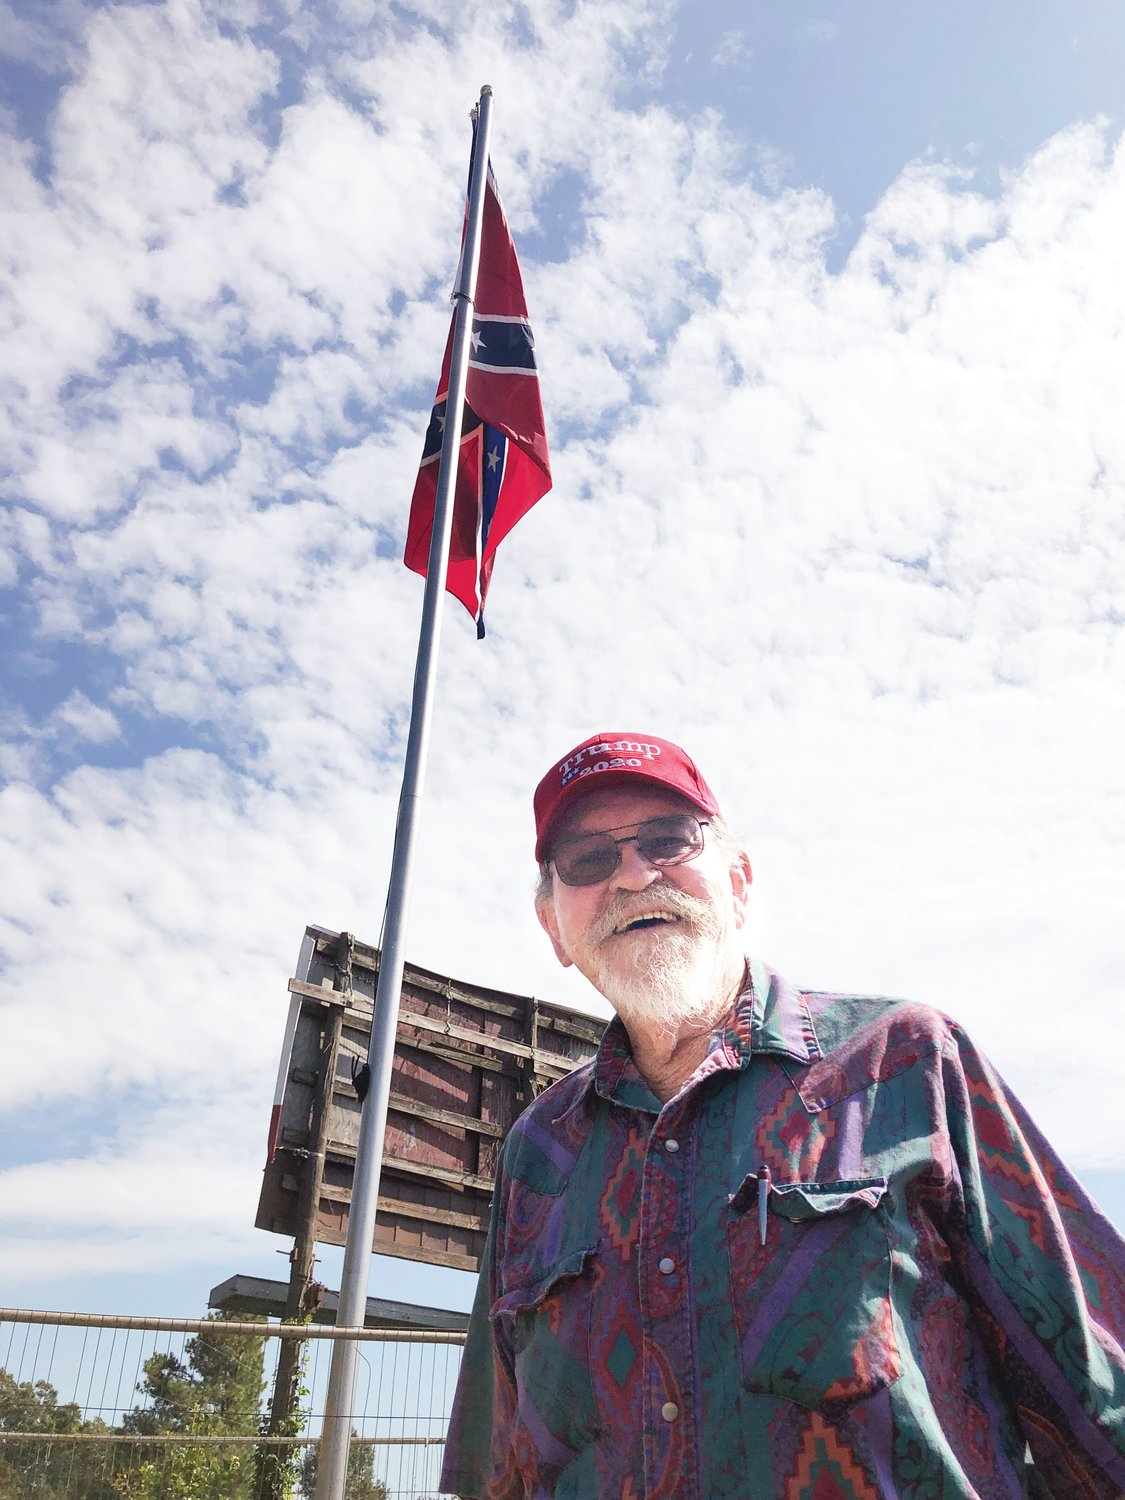 Christmas Tree Removal Pittsboro In 2020 First one, then another — Rebel flags flying in Pittsboro | The